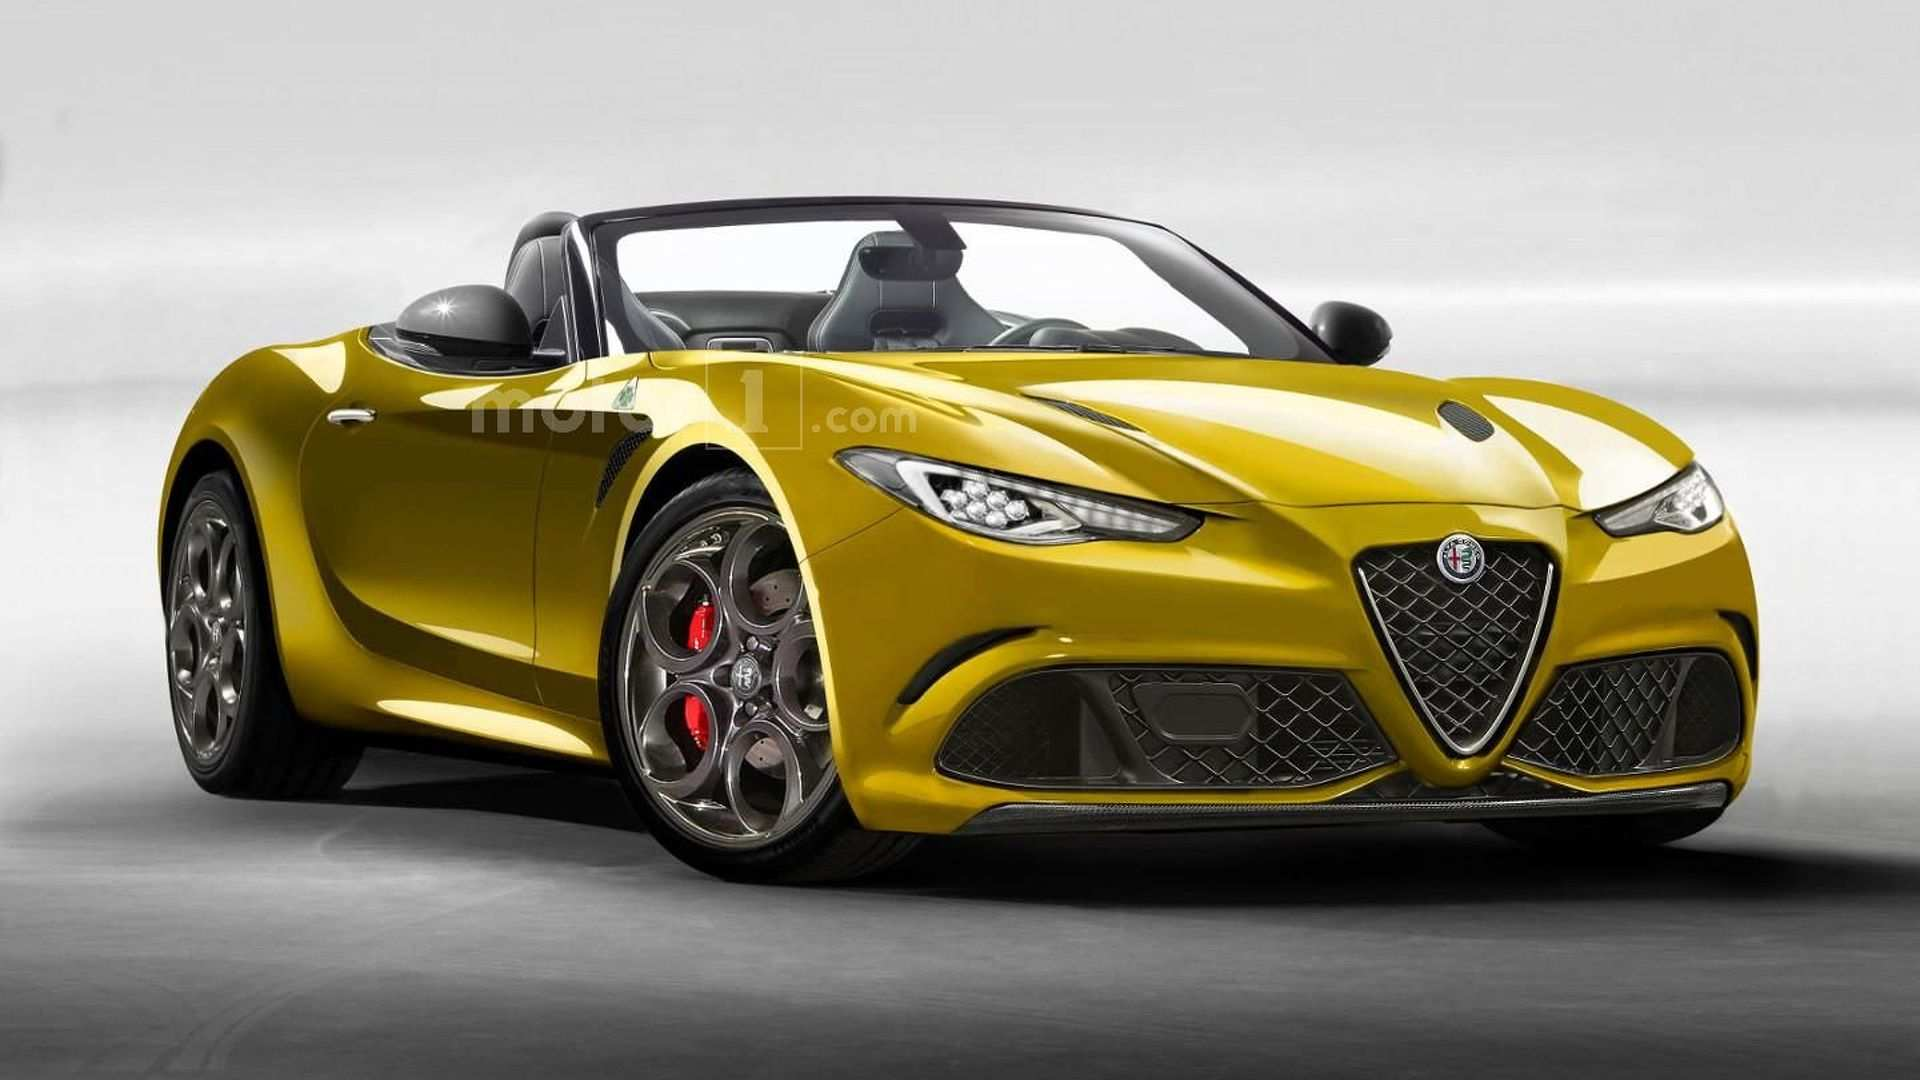 66 Concept of 2020 Alfa Romeo Models Rumors with 2020 Alfa Romeo Models